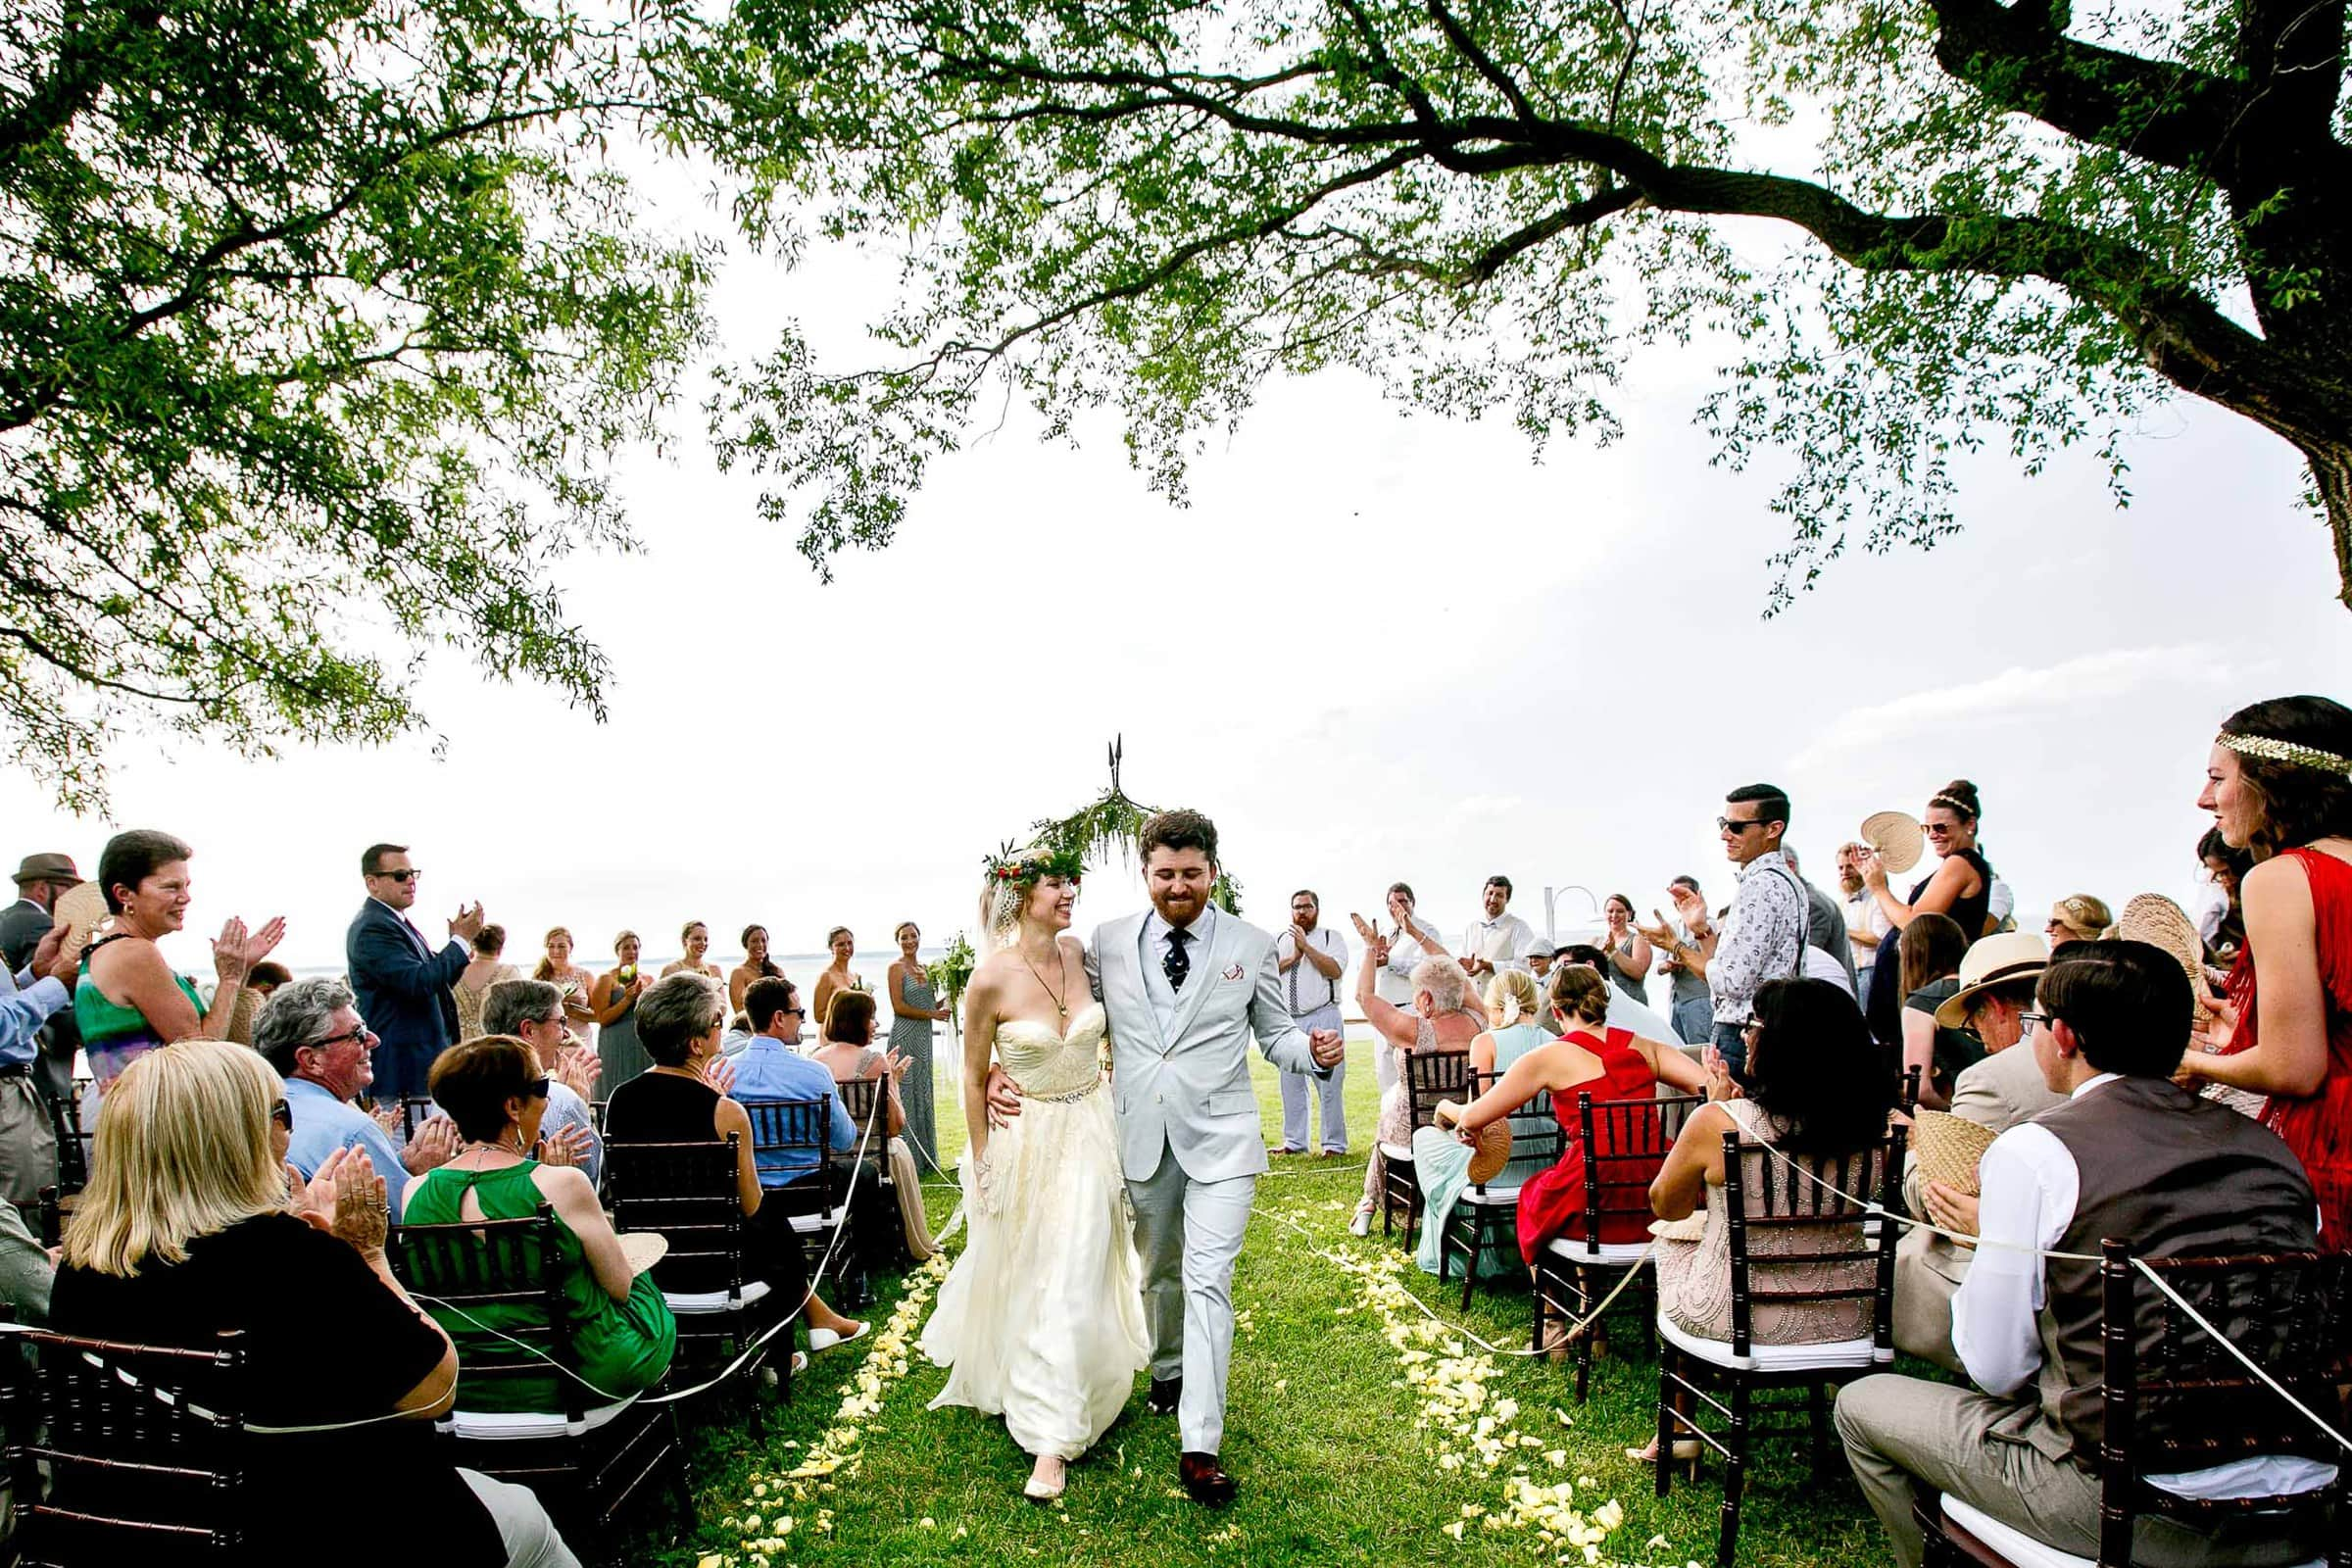 Bride and groom exiting a gorgeous Chesapeake Bay wedding ceremony in Maryland at Wades Point Inn.